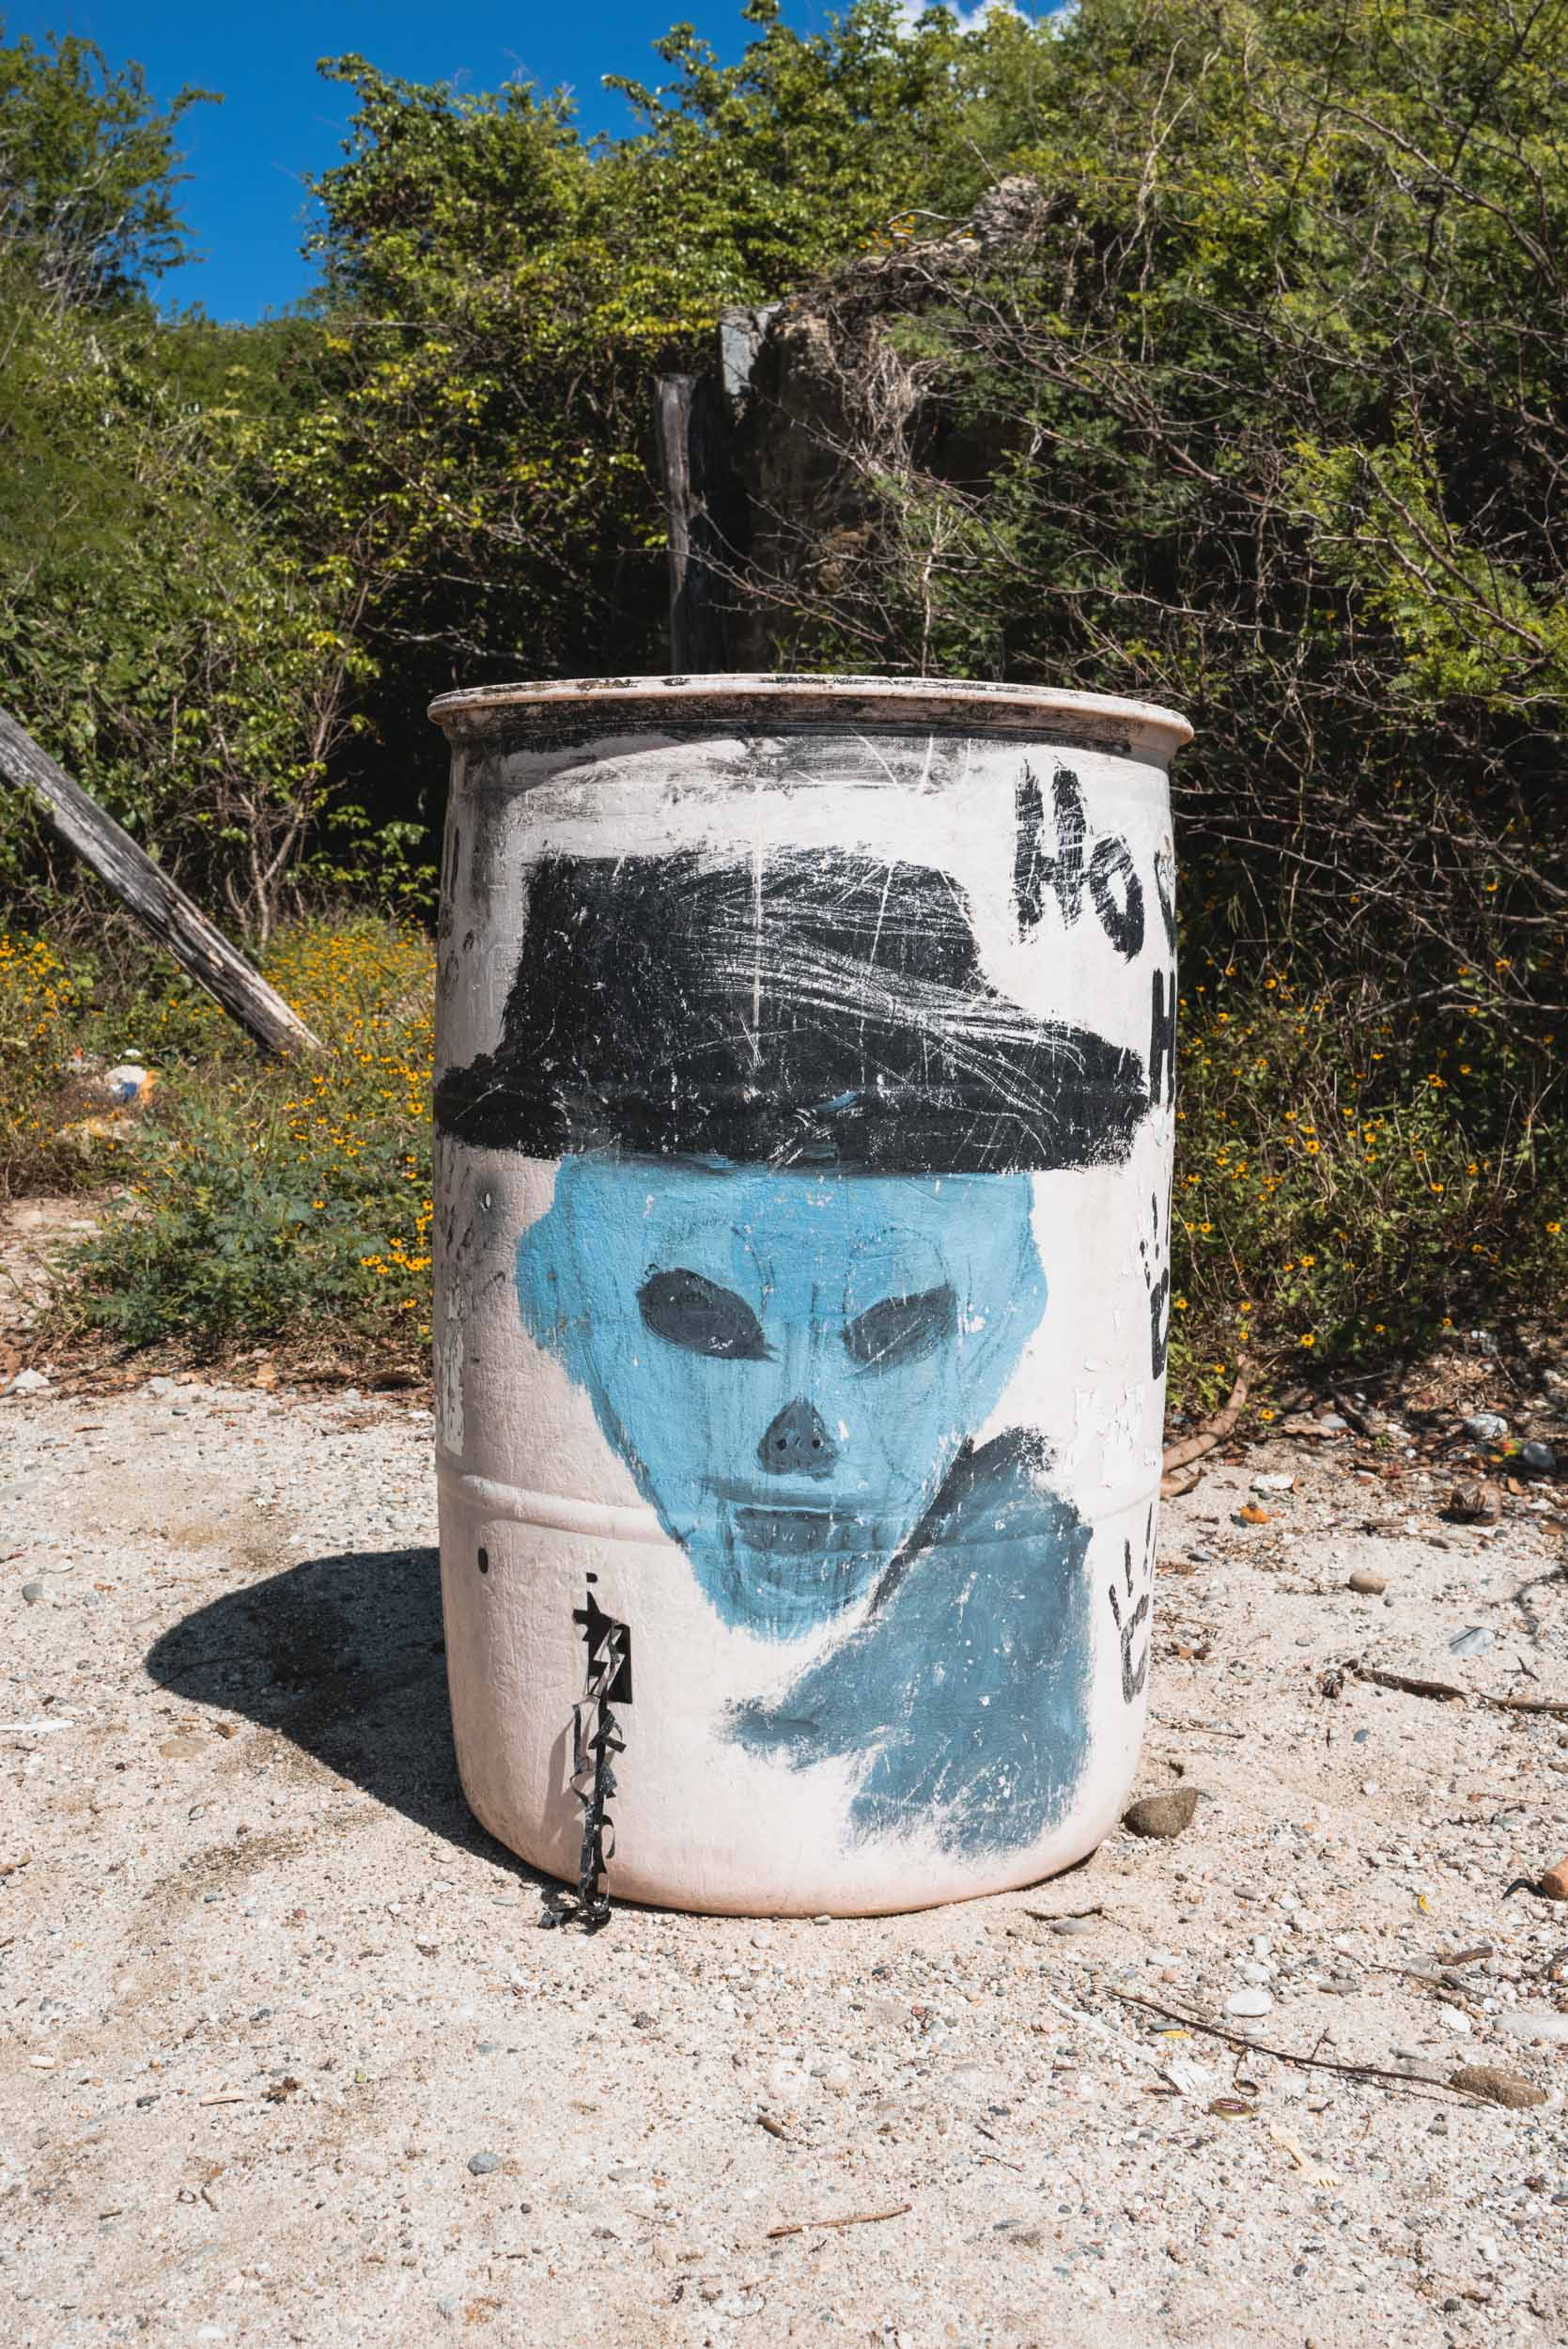 Riviera Nayarit beach painted garbage can